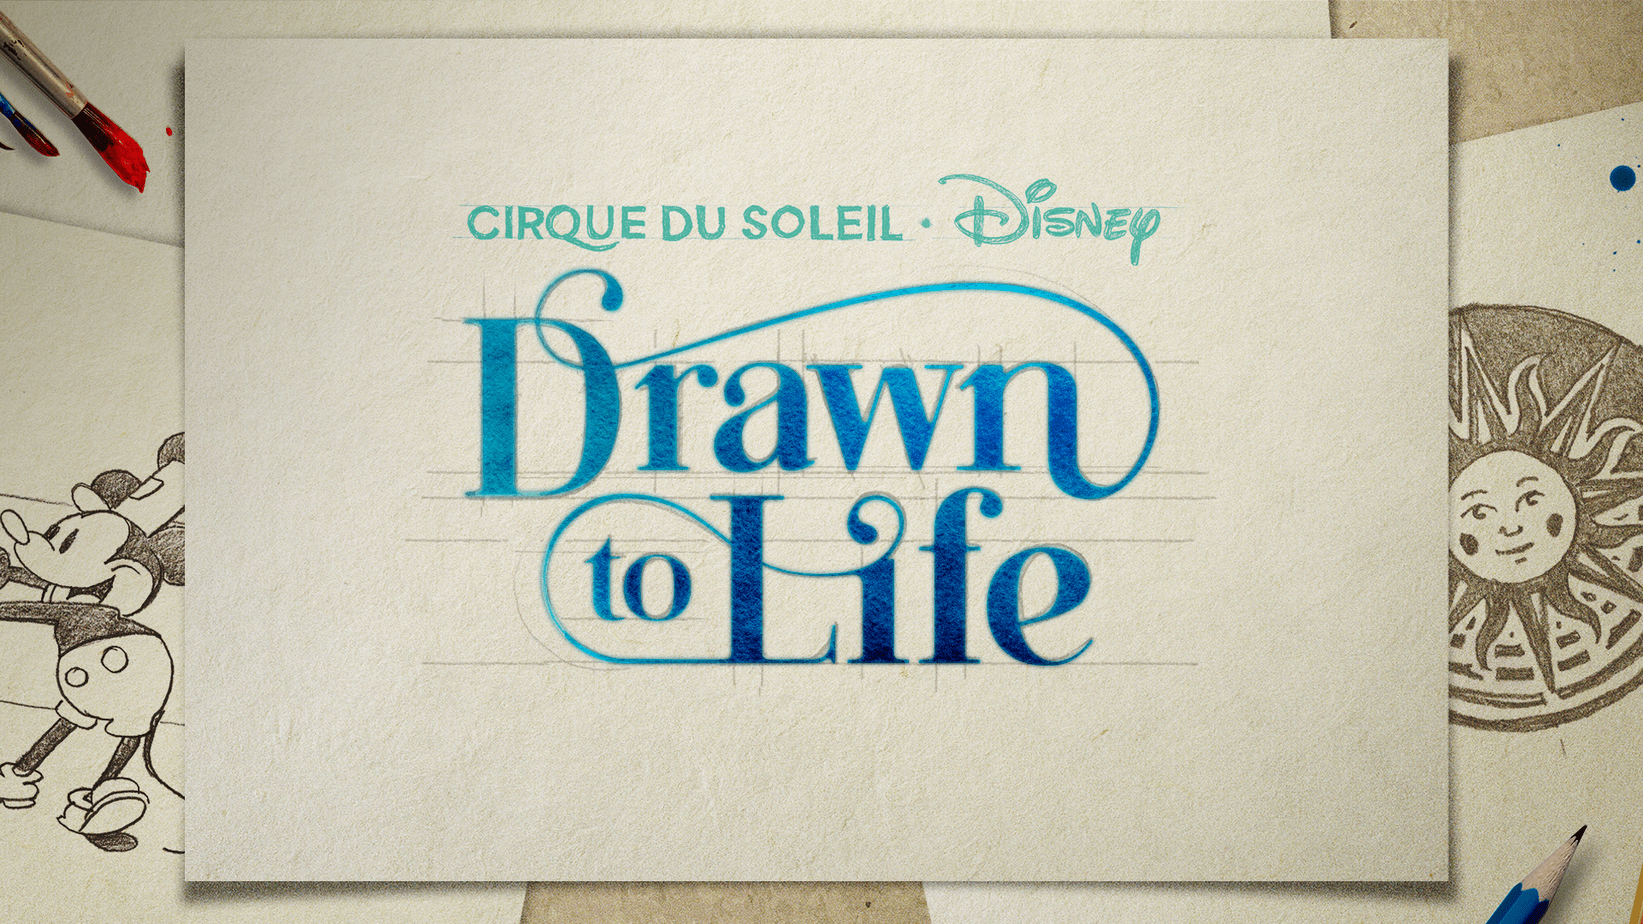 Cirque du Soleil Drawn to Life Tickets Now on Sale 1